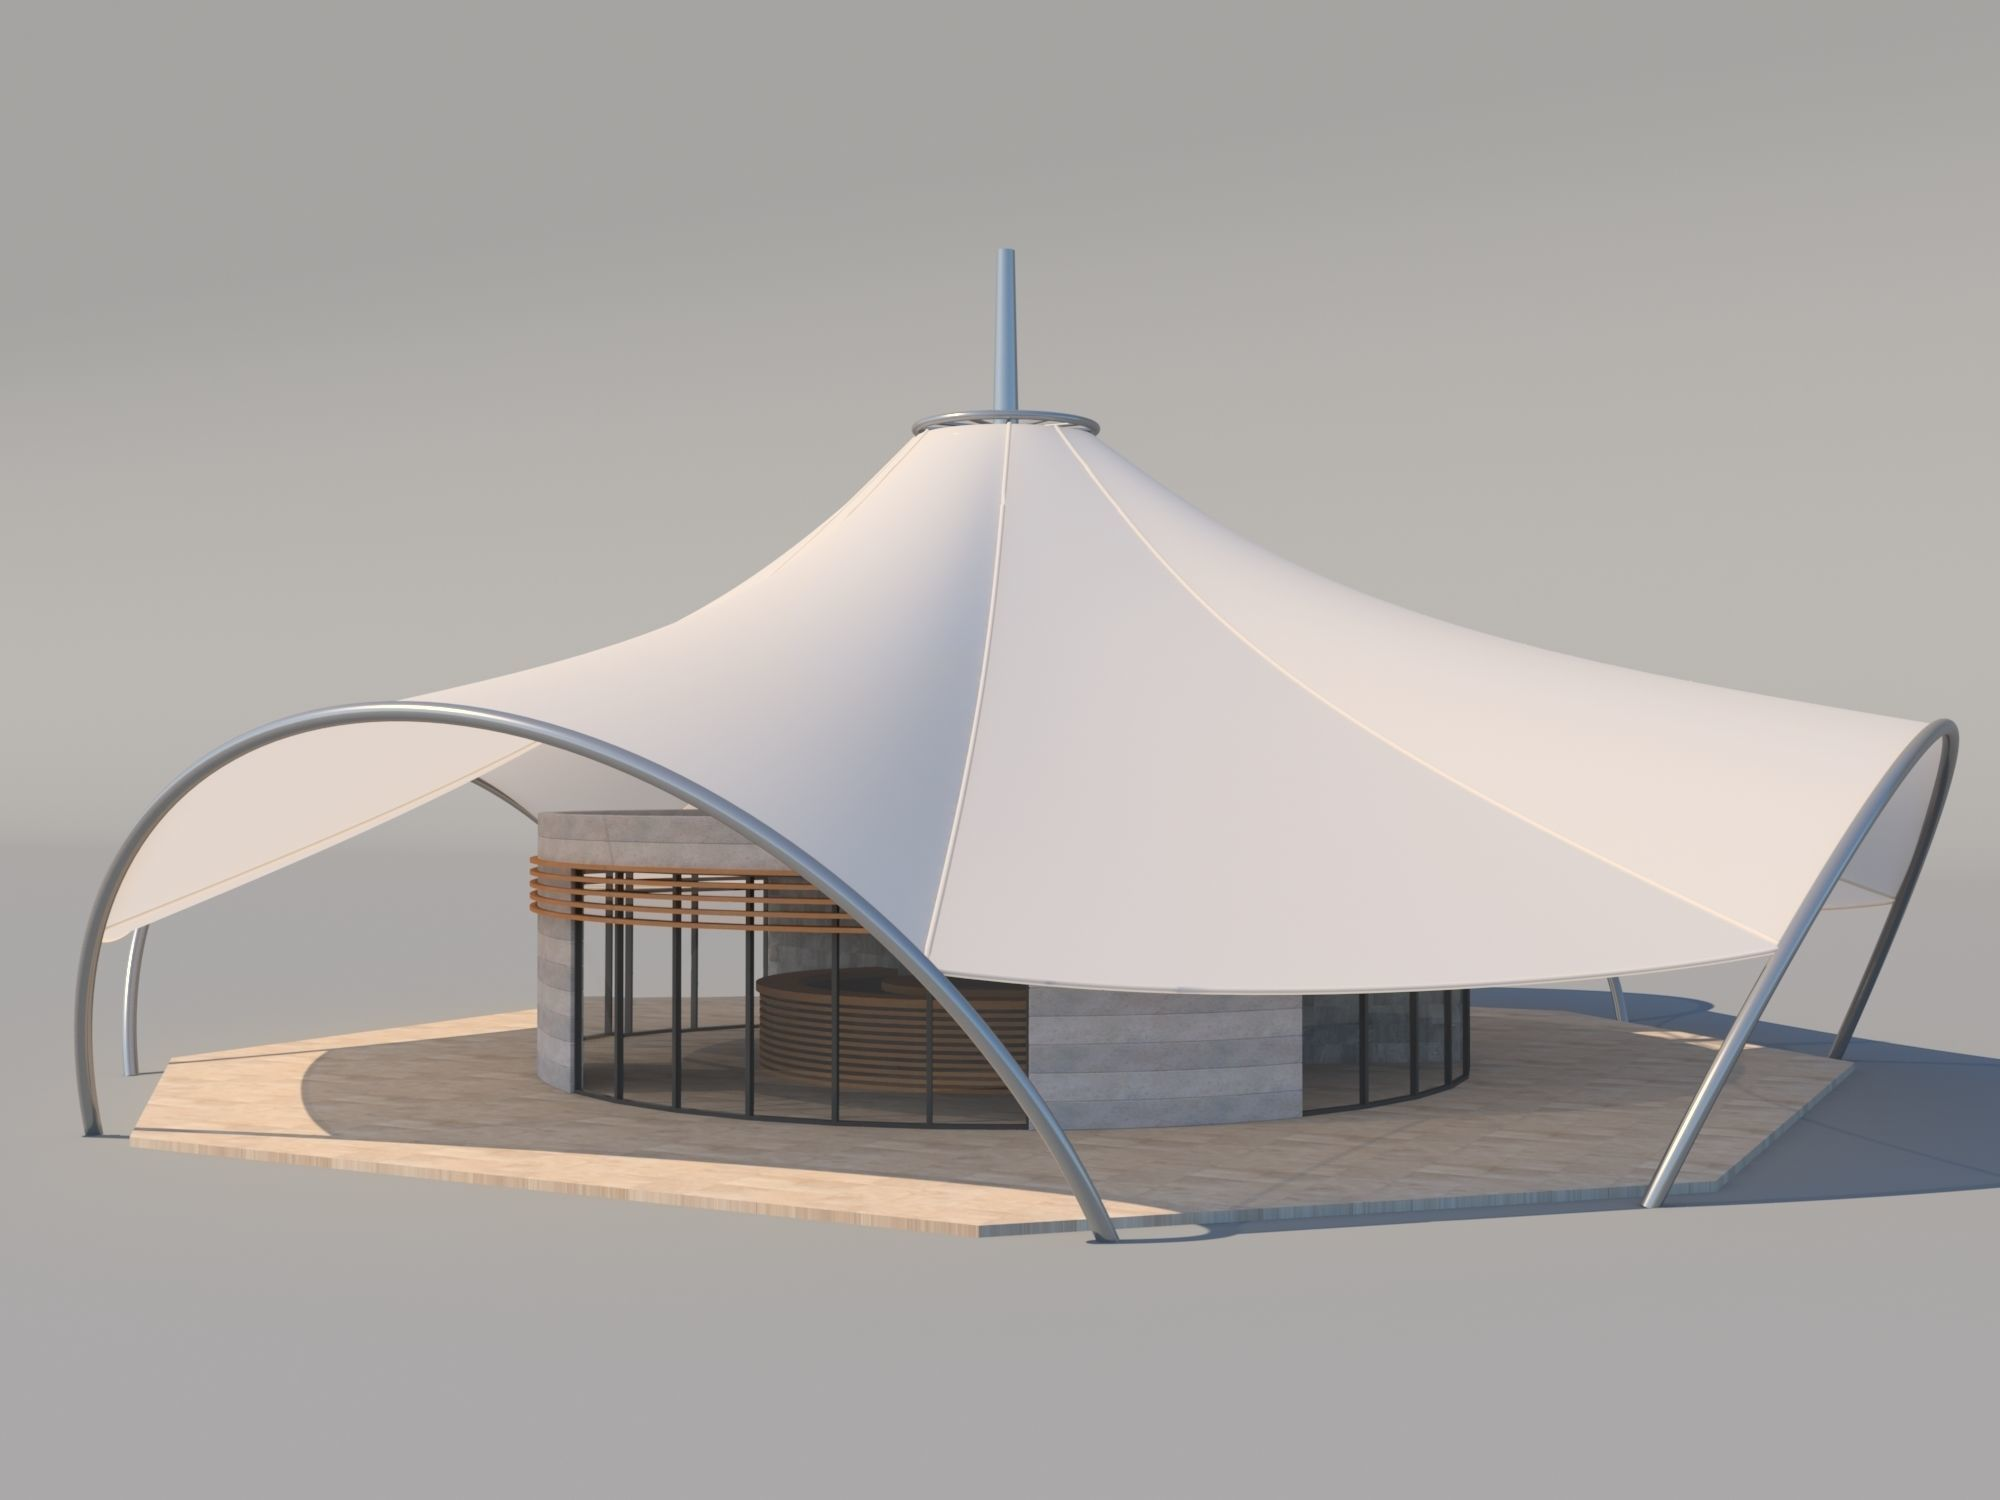 Cafe with Membran Canopy